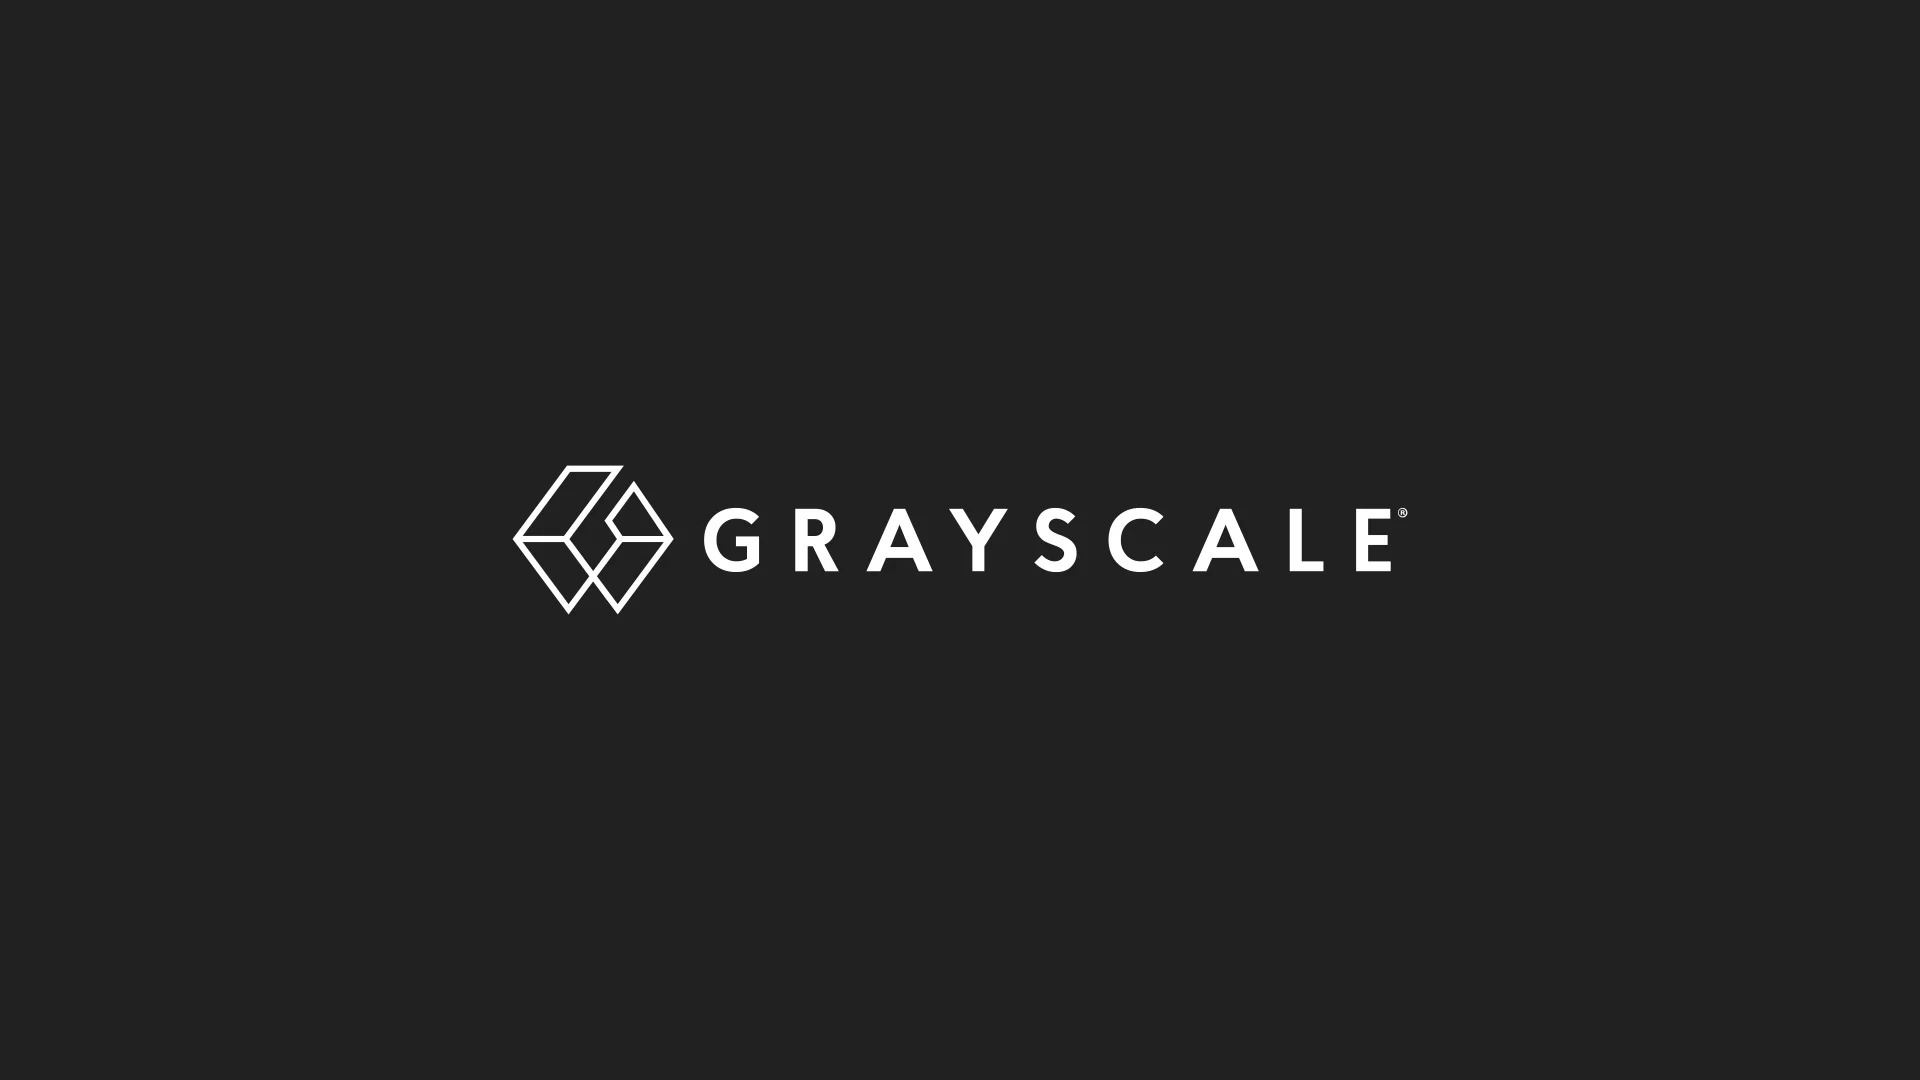 Grayscale announces plans to launch a DeFi-focused investment fund